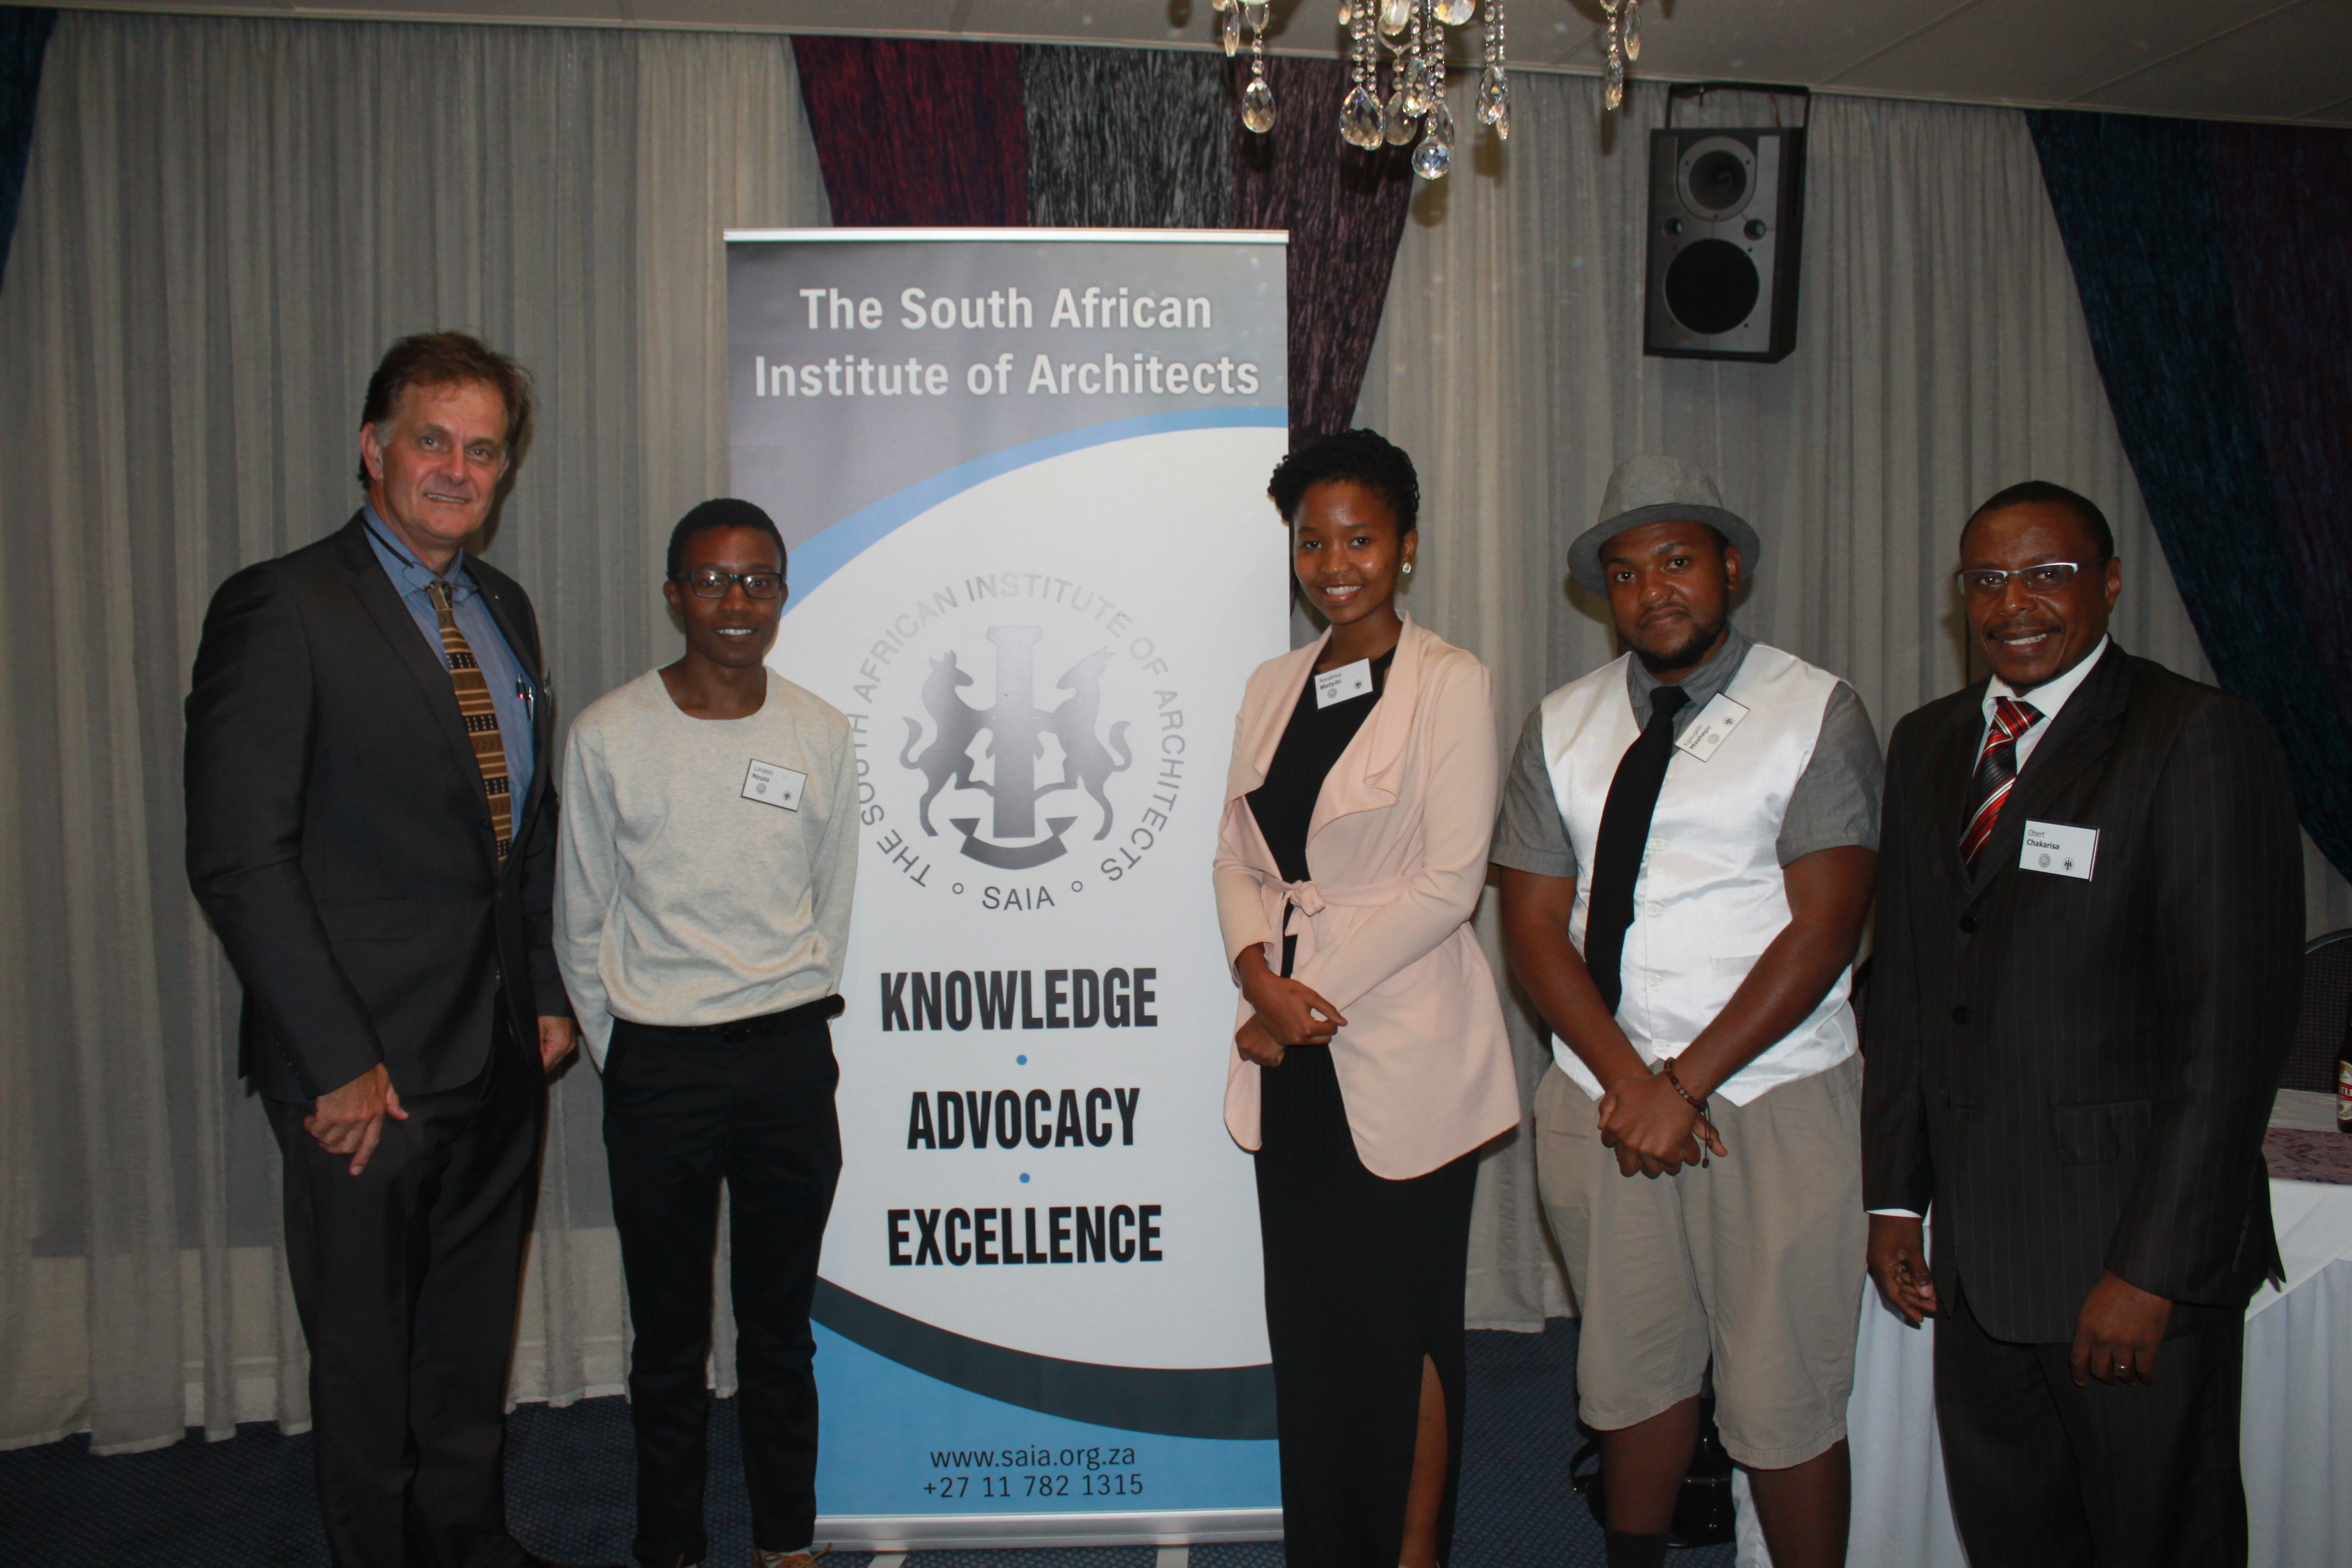 Image: (From left: Mr Kevin Bingham, SAIA president, Mr Lindelo Nzuza (student), Ms Nwabisa Madjibi (student), Mr Kgaogelo Mashego and SAIA CEO, Mr Obert Chakarisa).